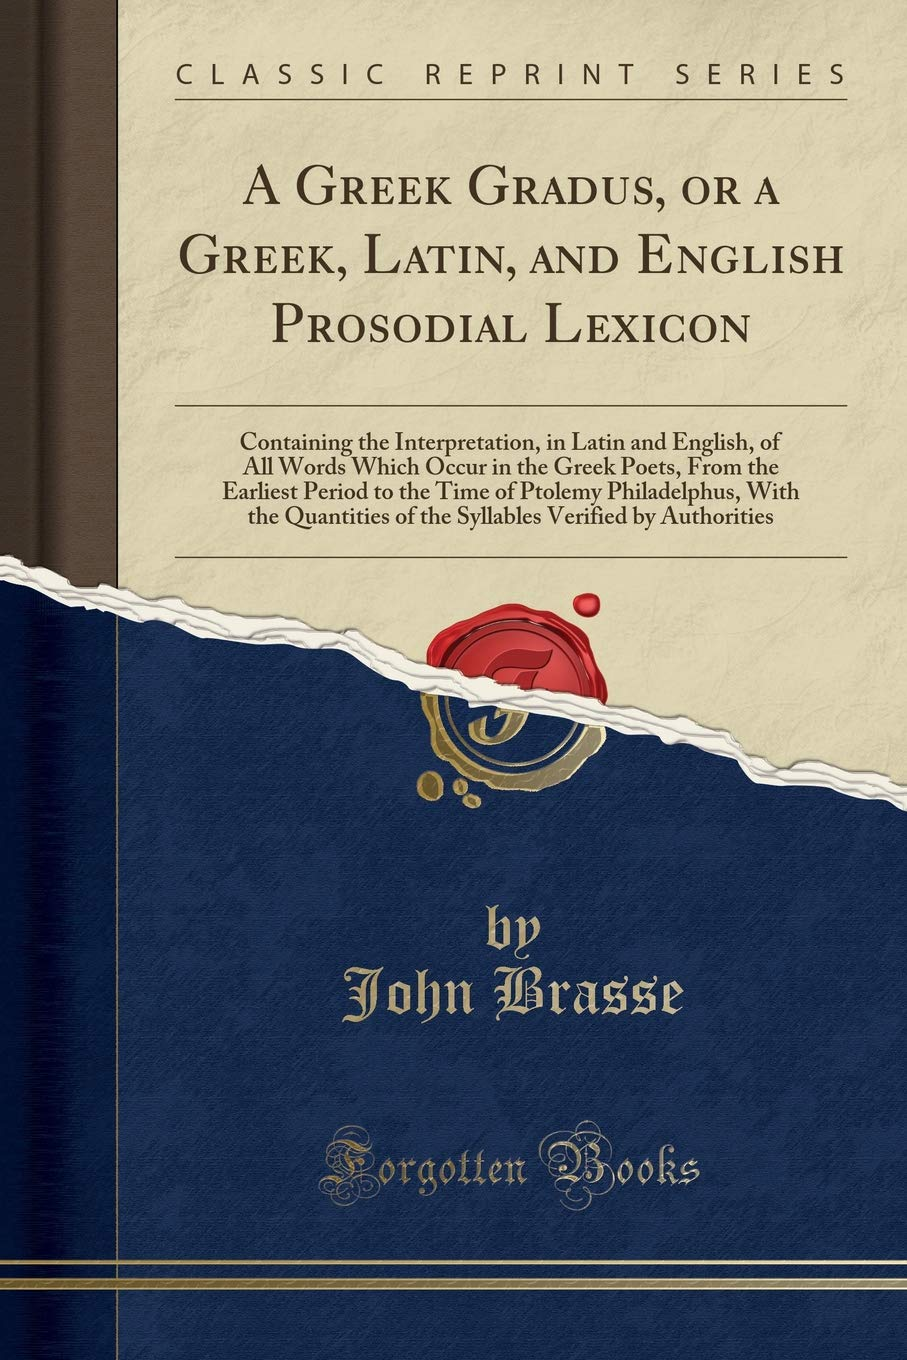 A Greek Gradus, or a Greek, Latin, and English Prosodial Lexicon: Containing the Interpretation, in Latin and English, of All Words Which Occur in the ... Philadelphus, With the Quantities of the Sy pdf